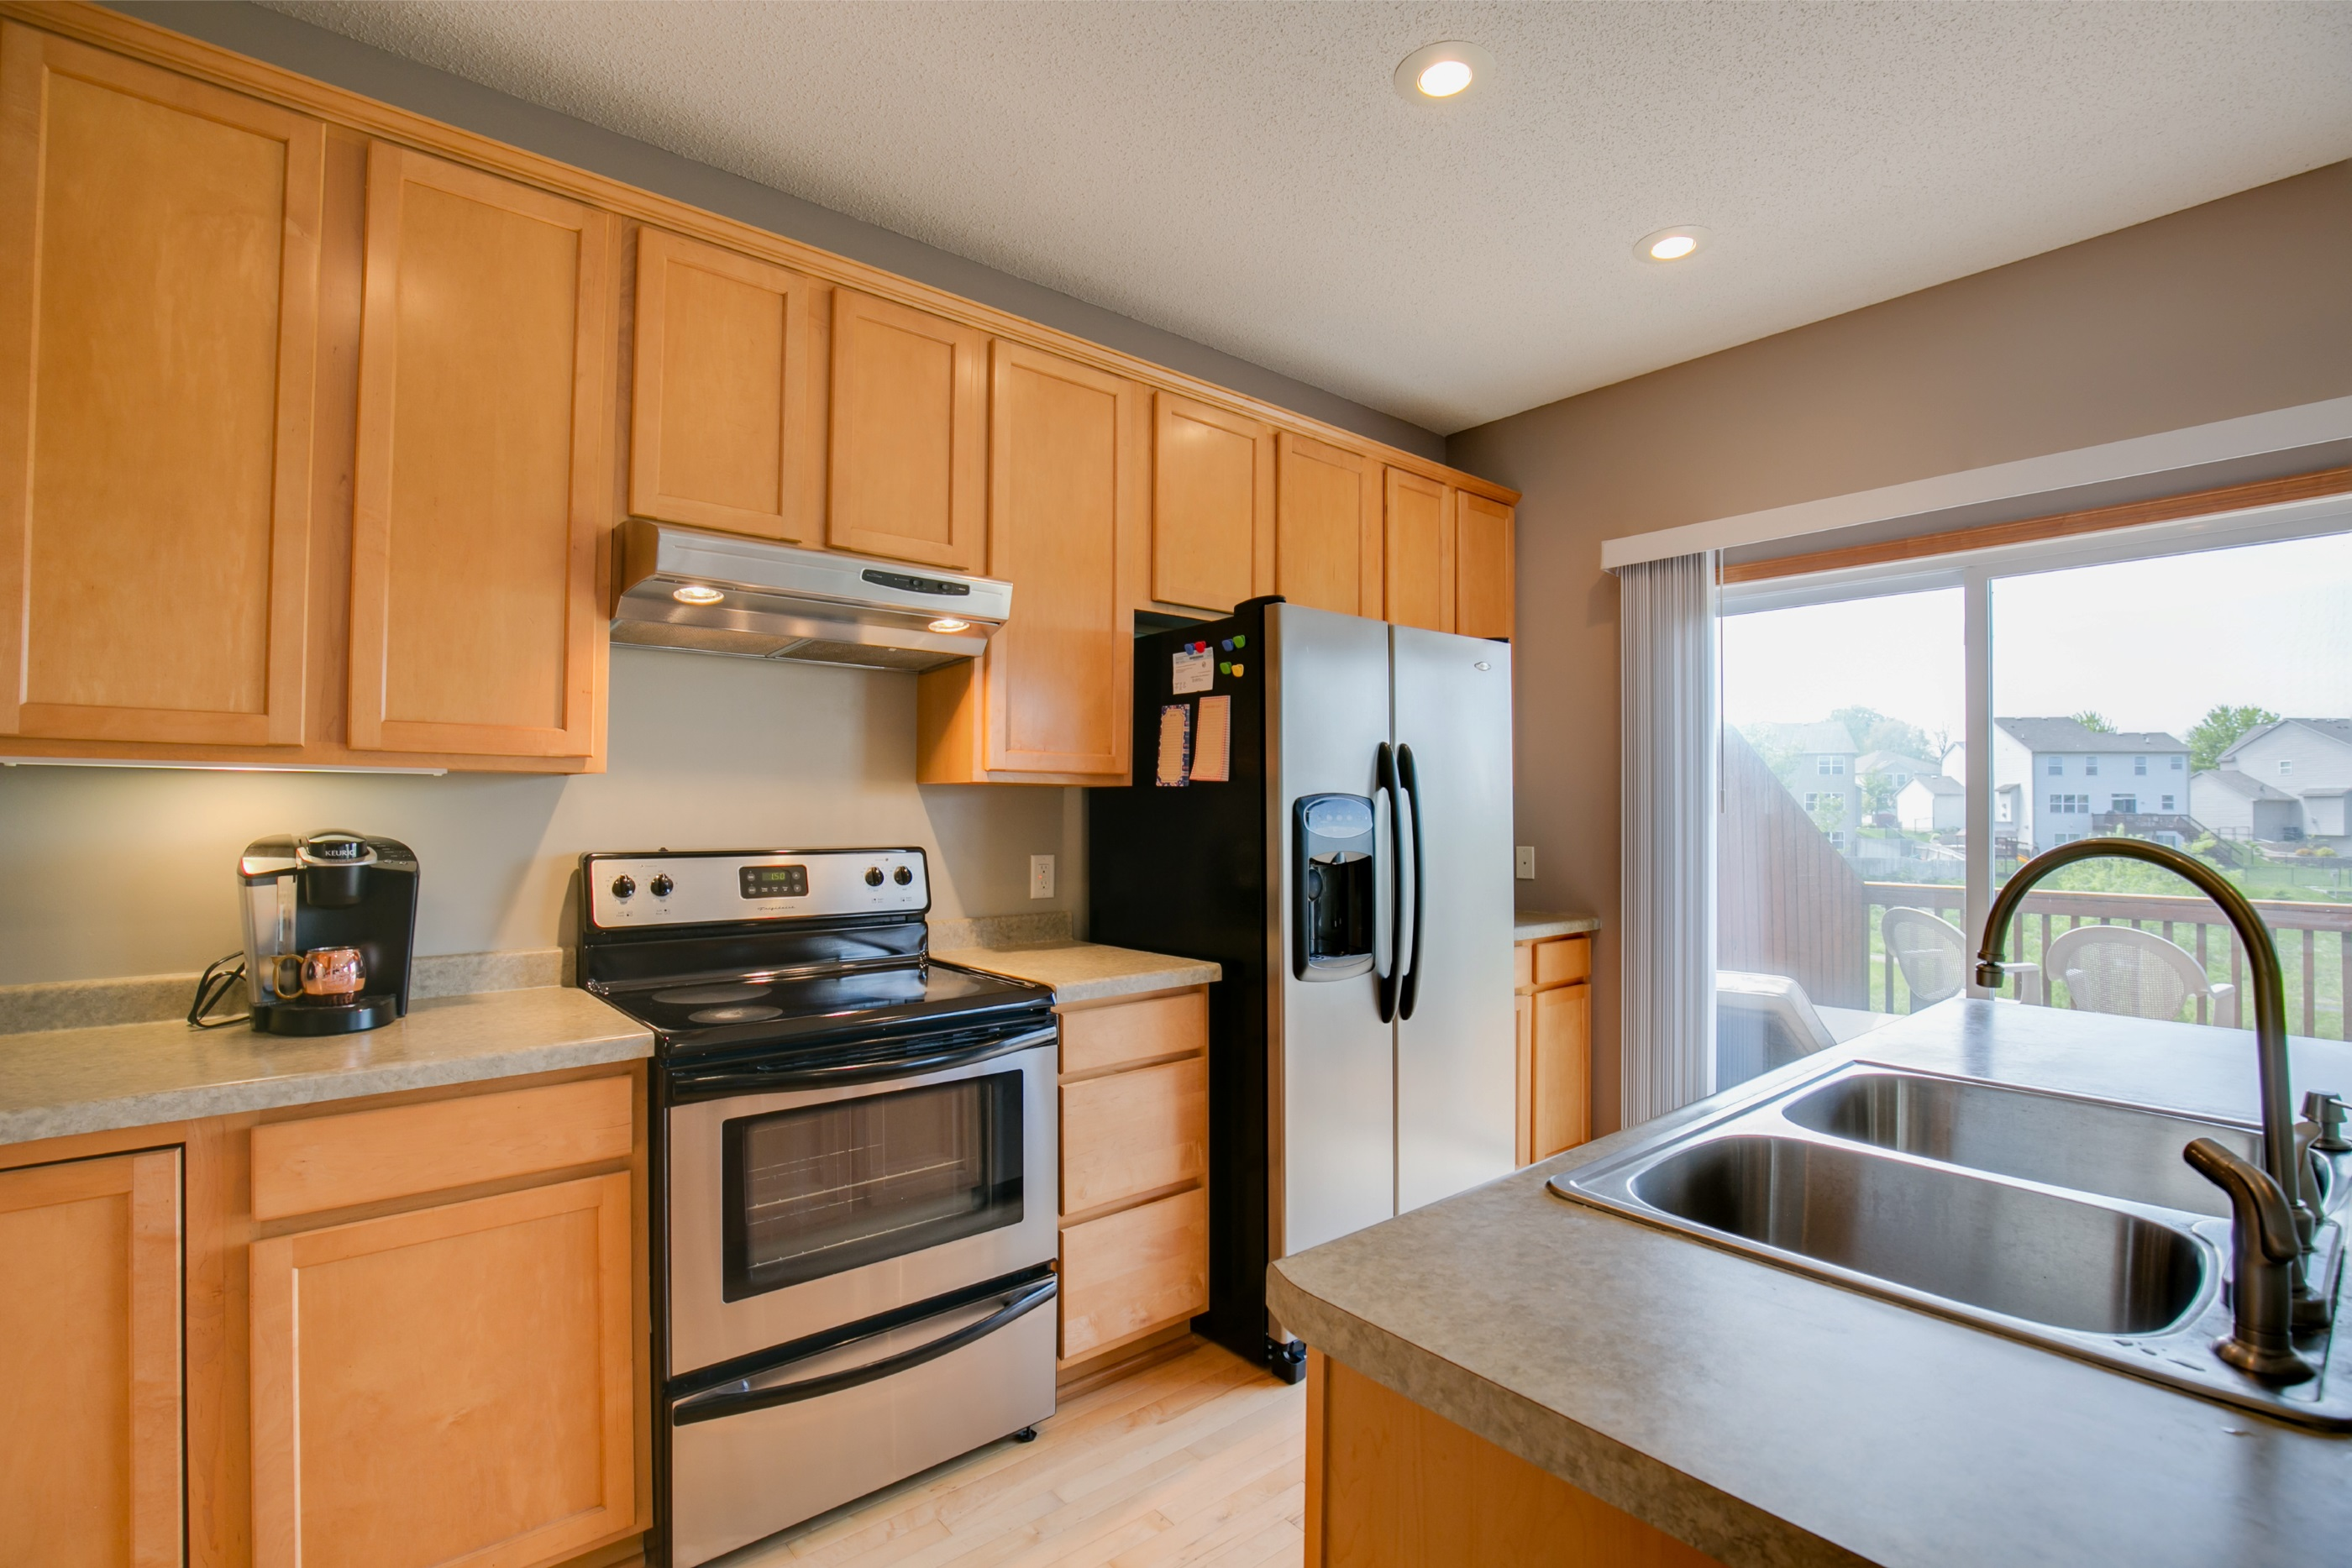 9 Tips for a Low-Cost Kitchen Remodel